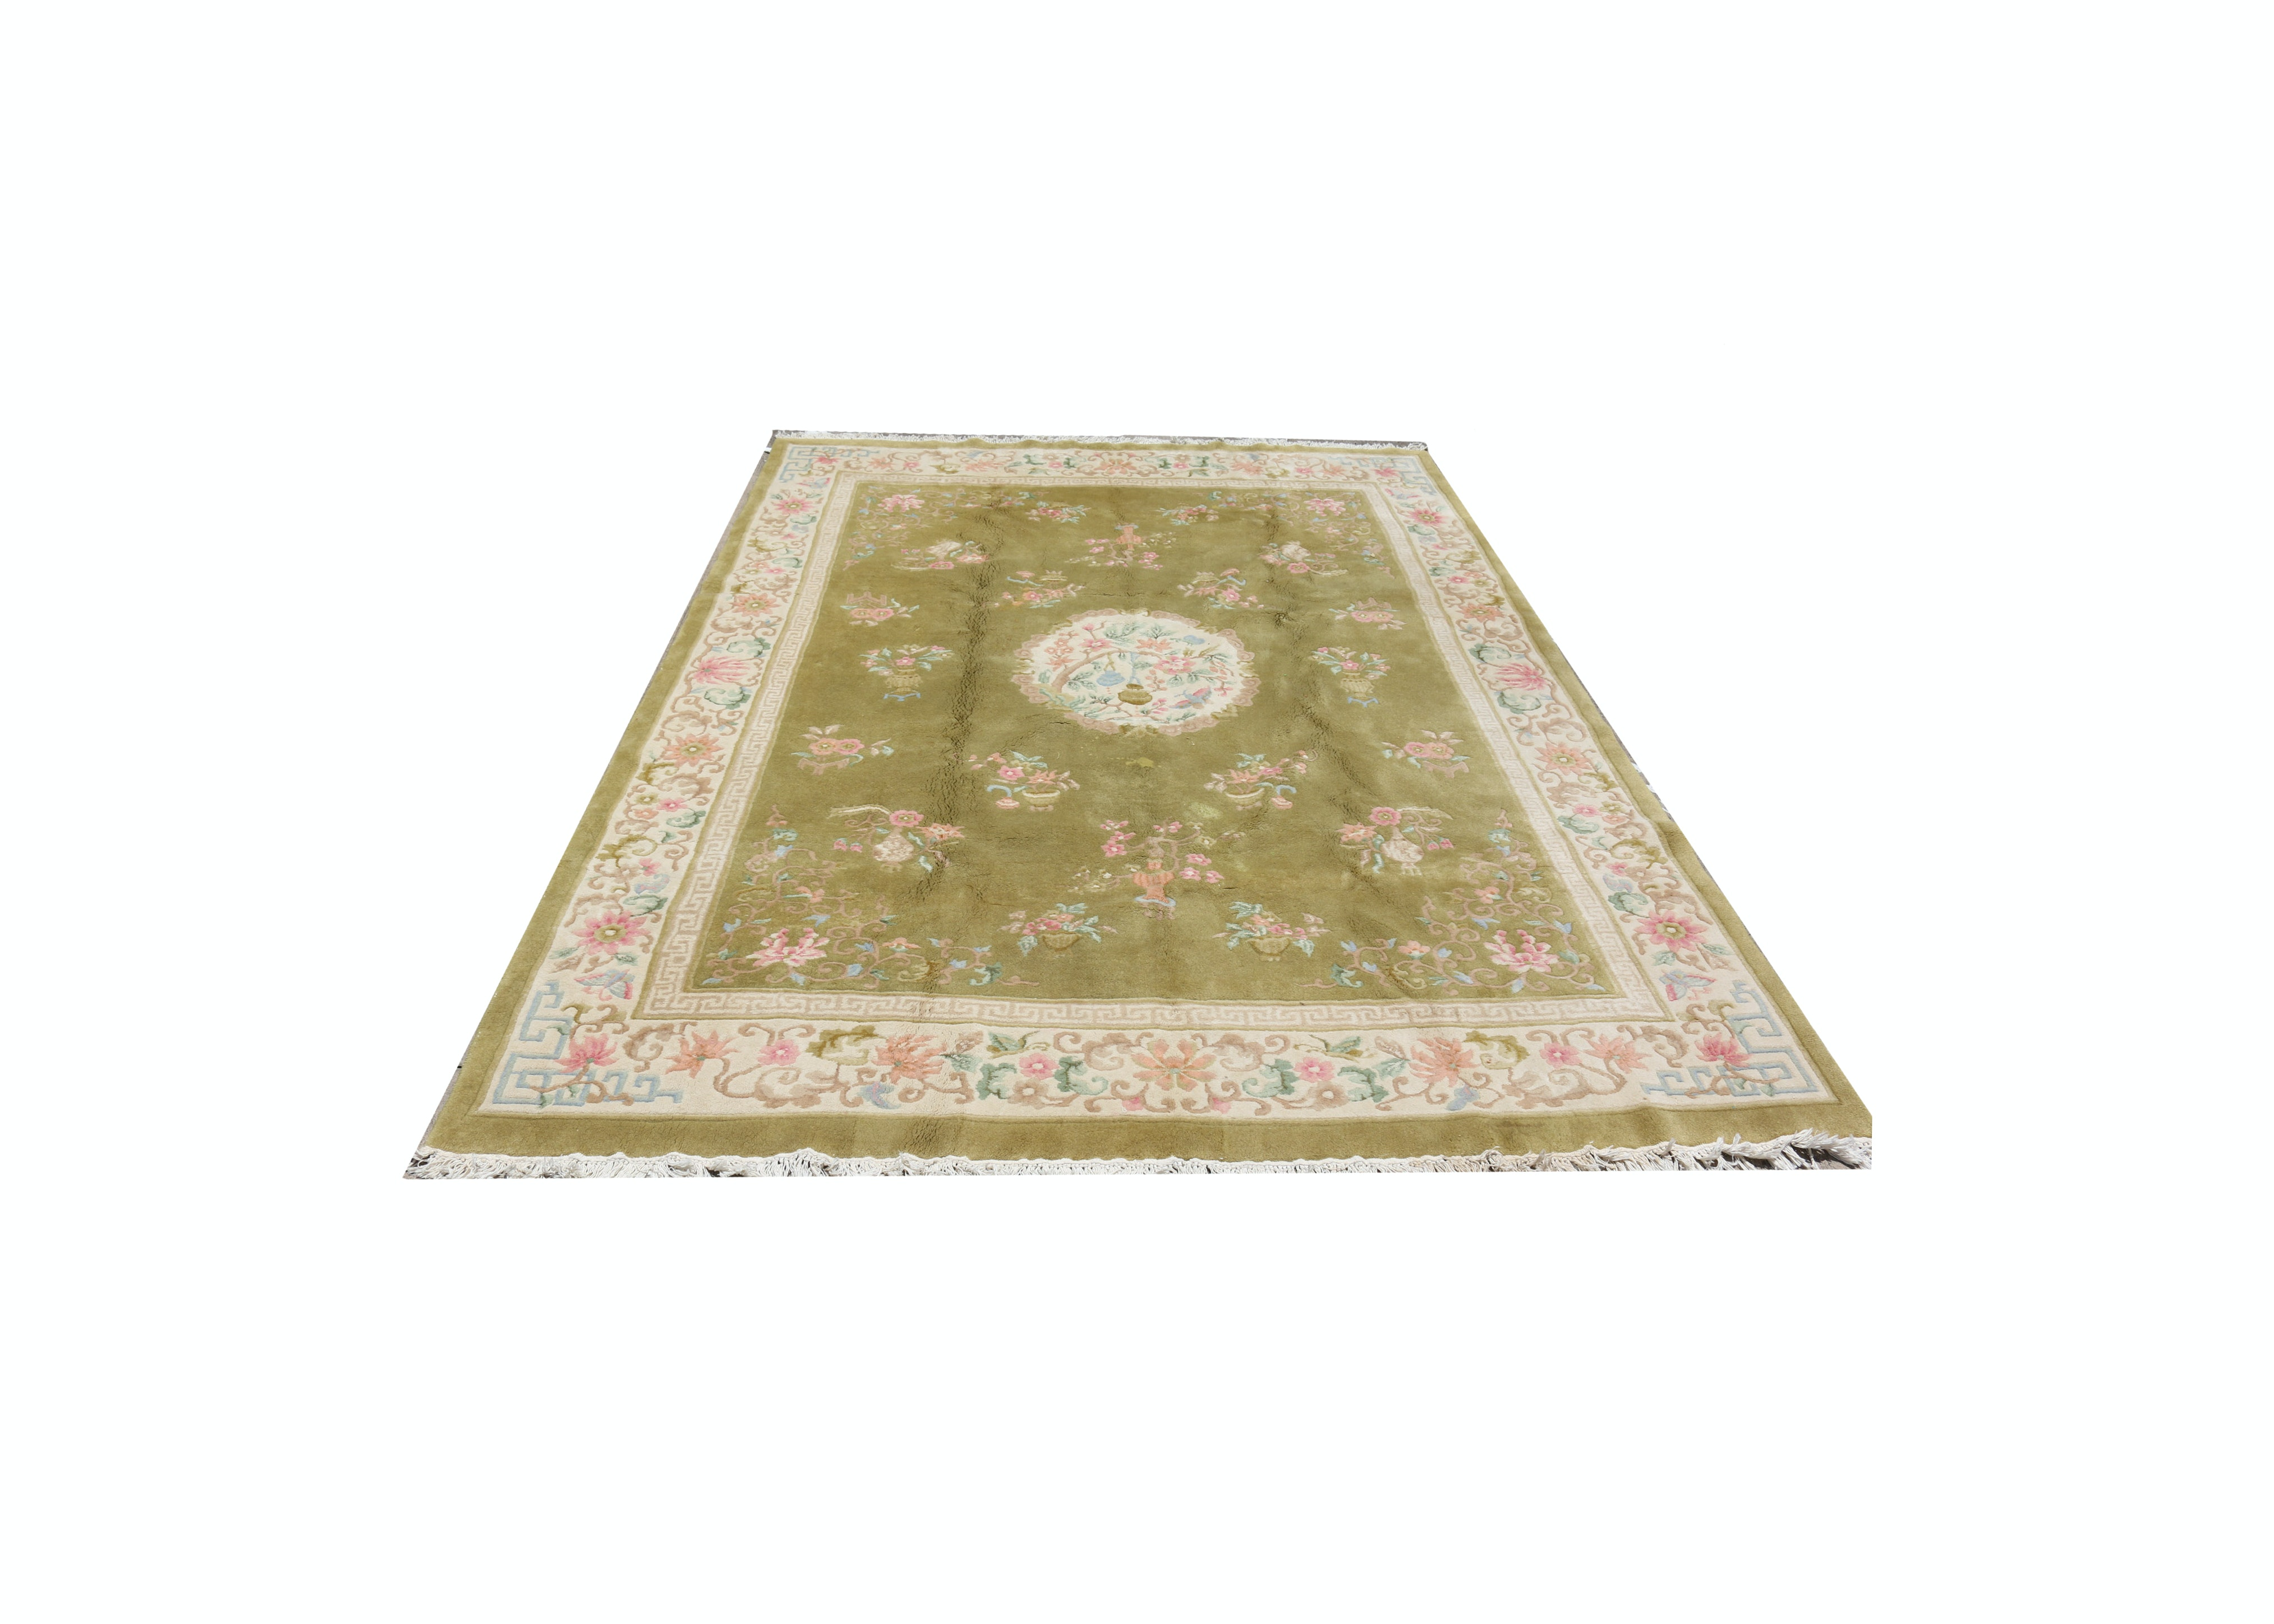 Hand Woven Indo Chinese Rug